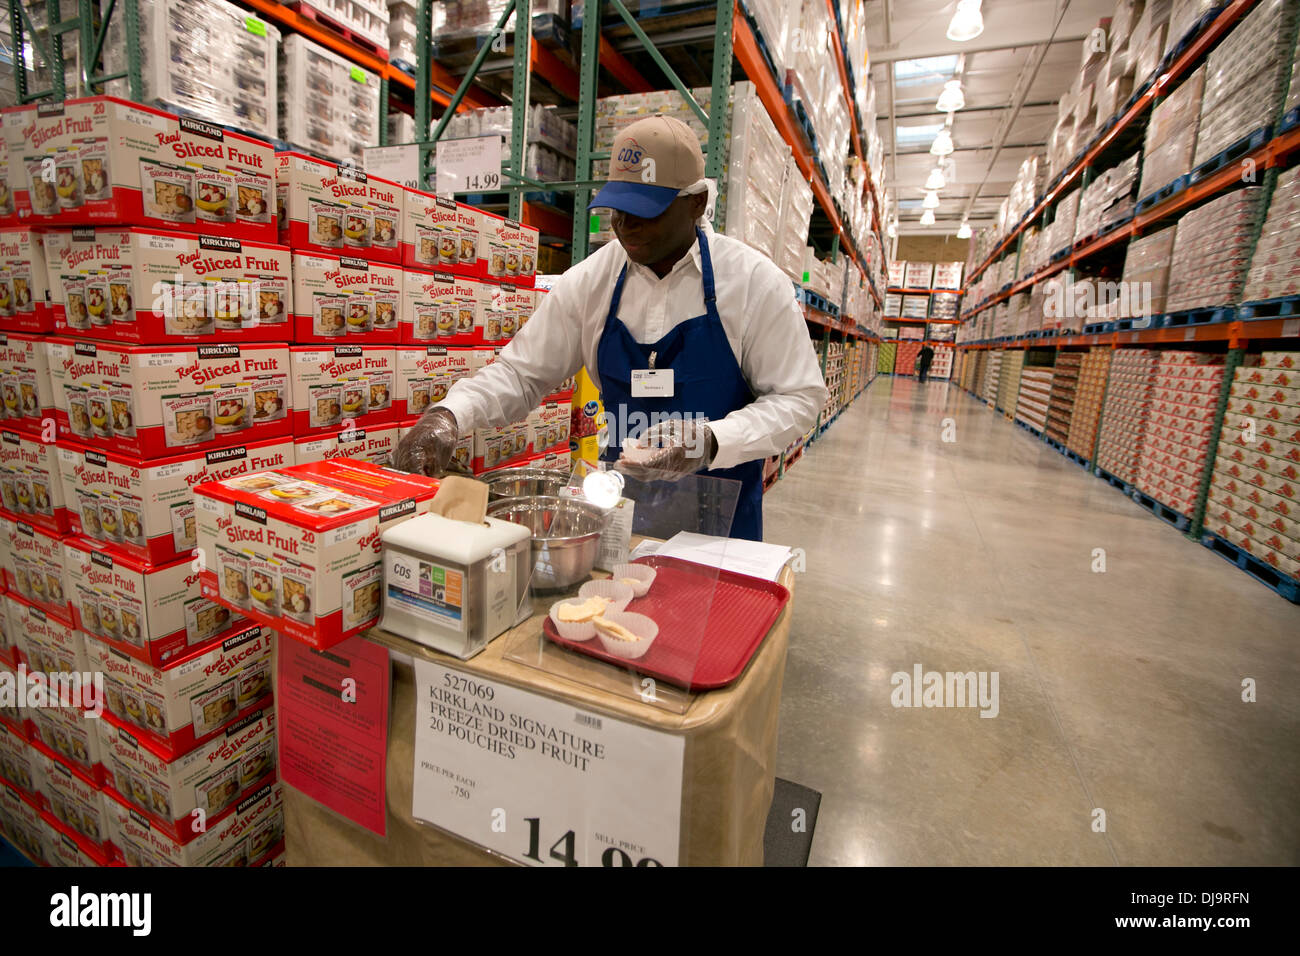 Food samples given out to costco warehouse store shoppers at new.